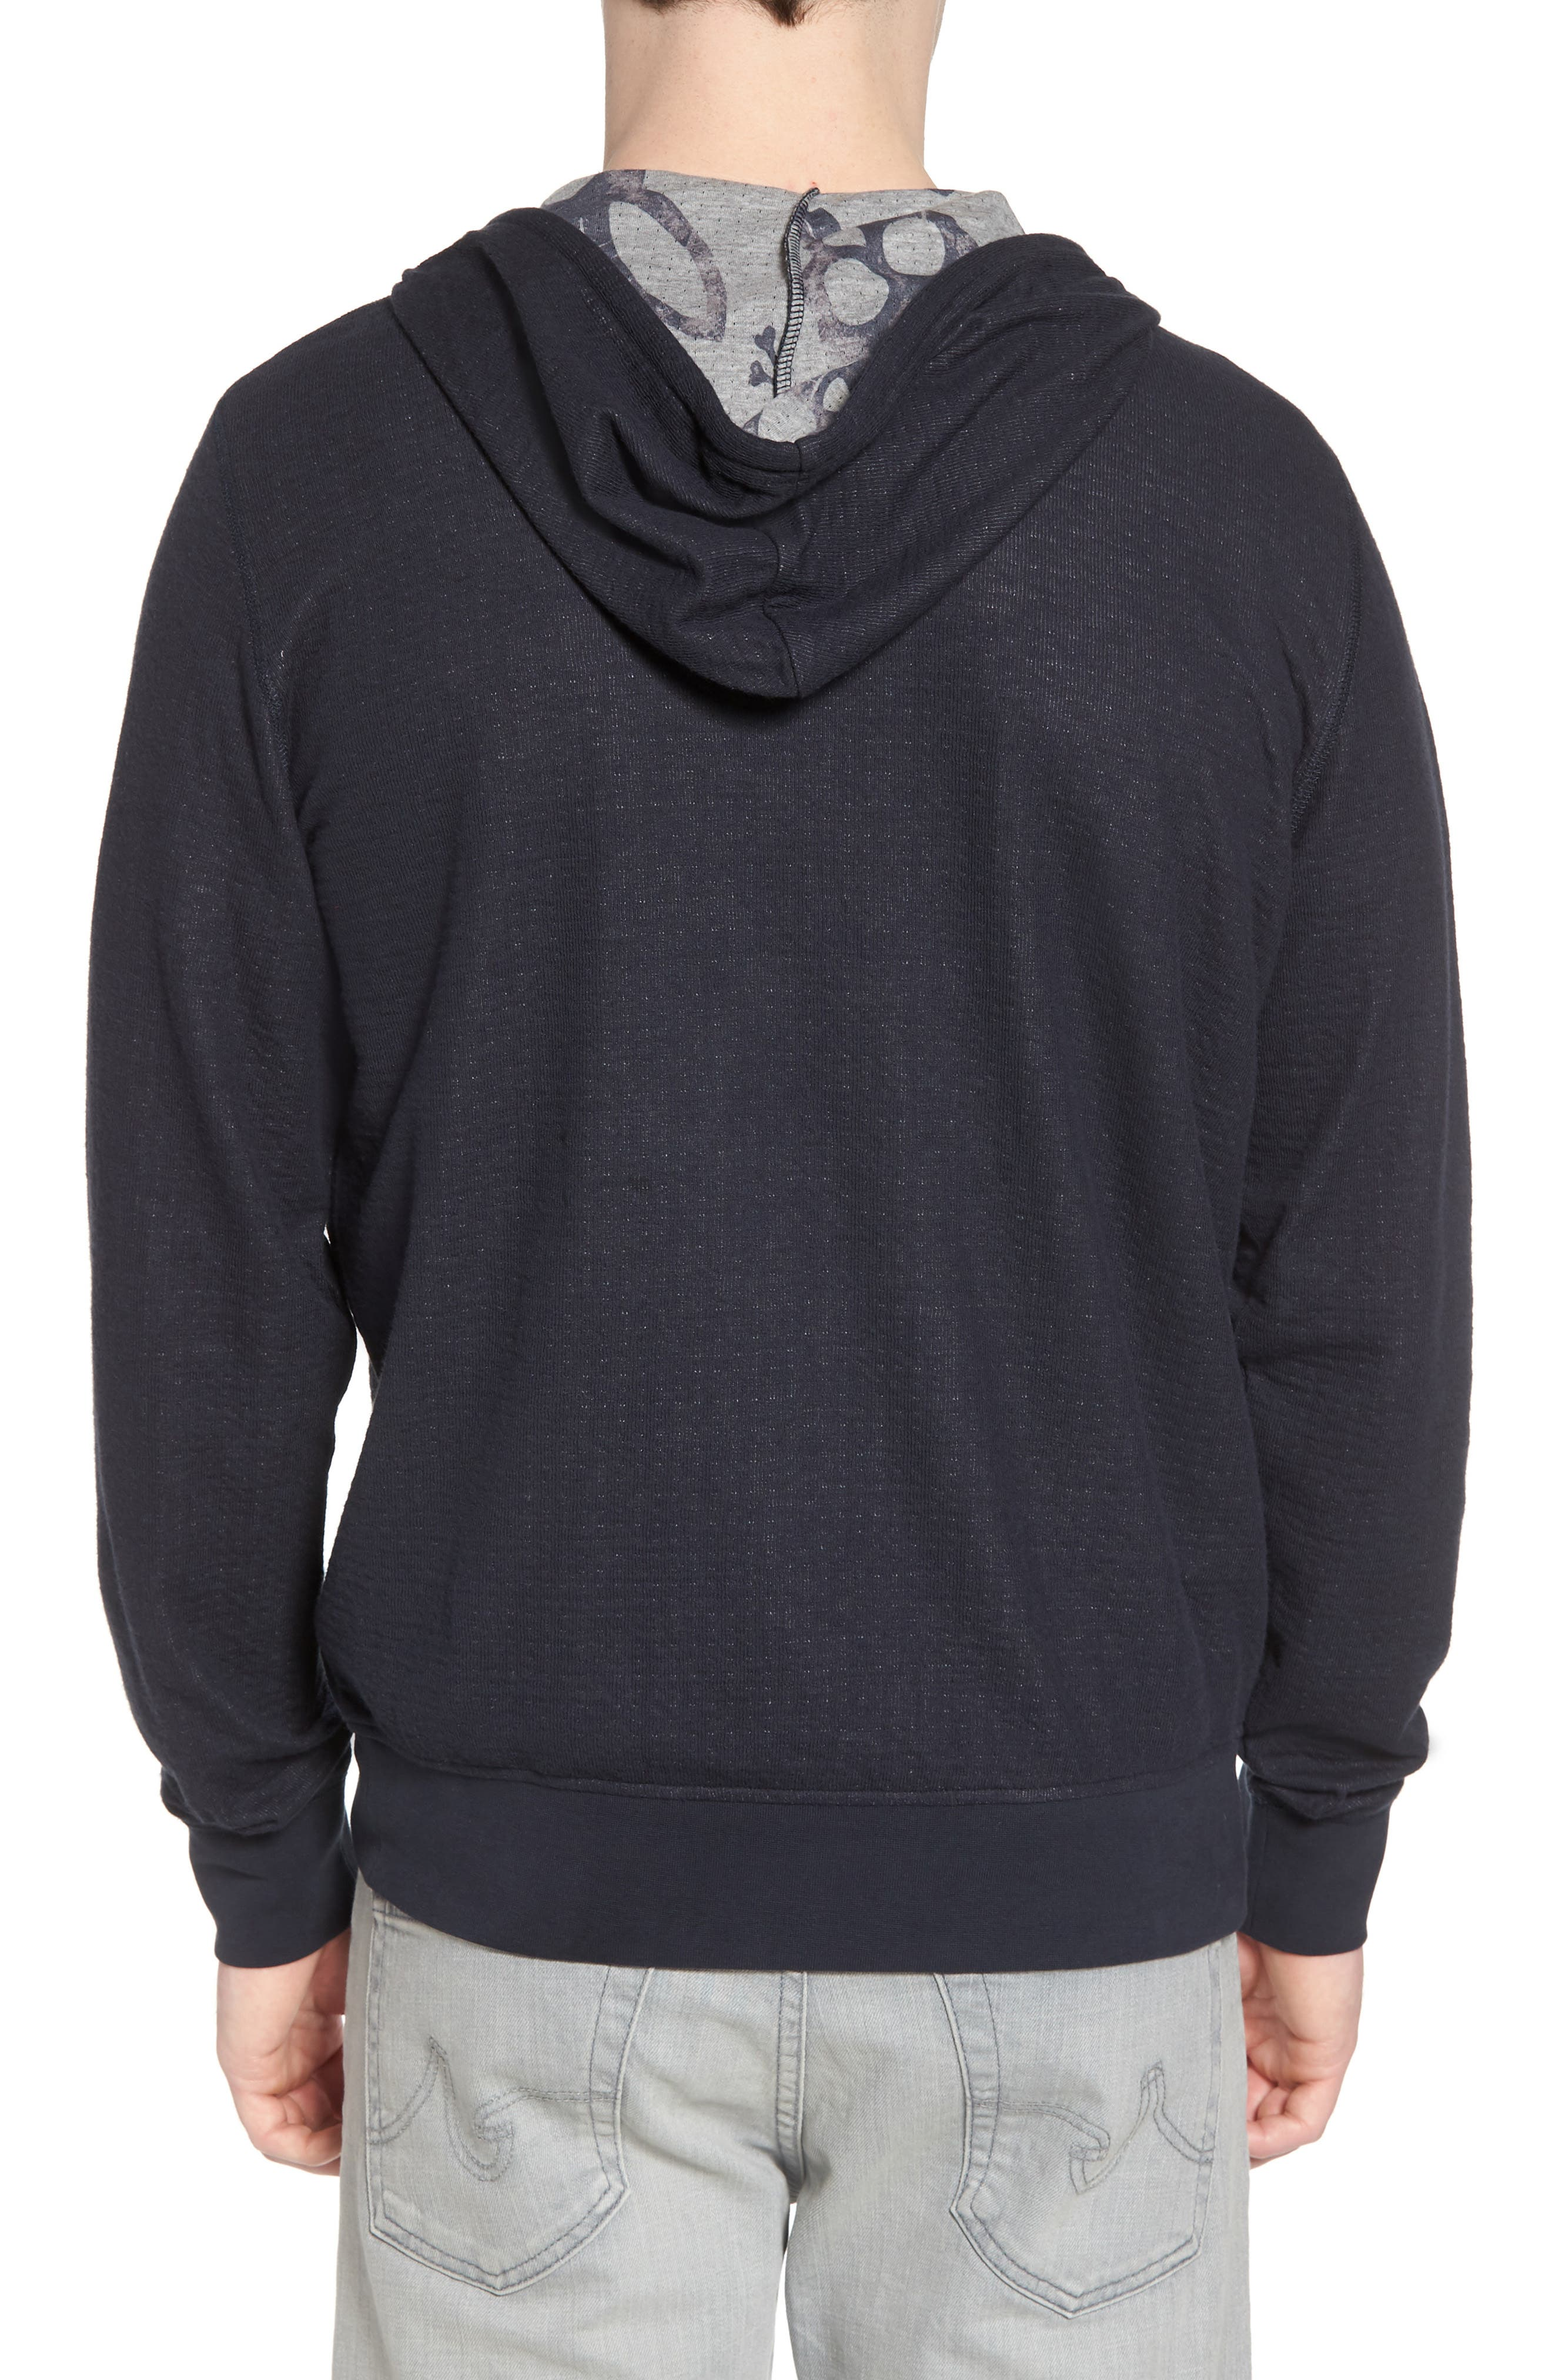 Double Face Hoodie,                             Alternate thumbnail 2, color,                             Navy